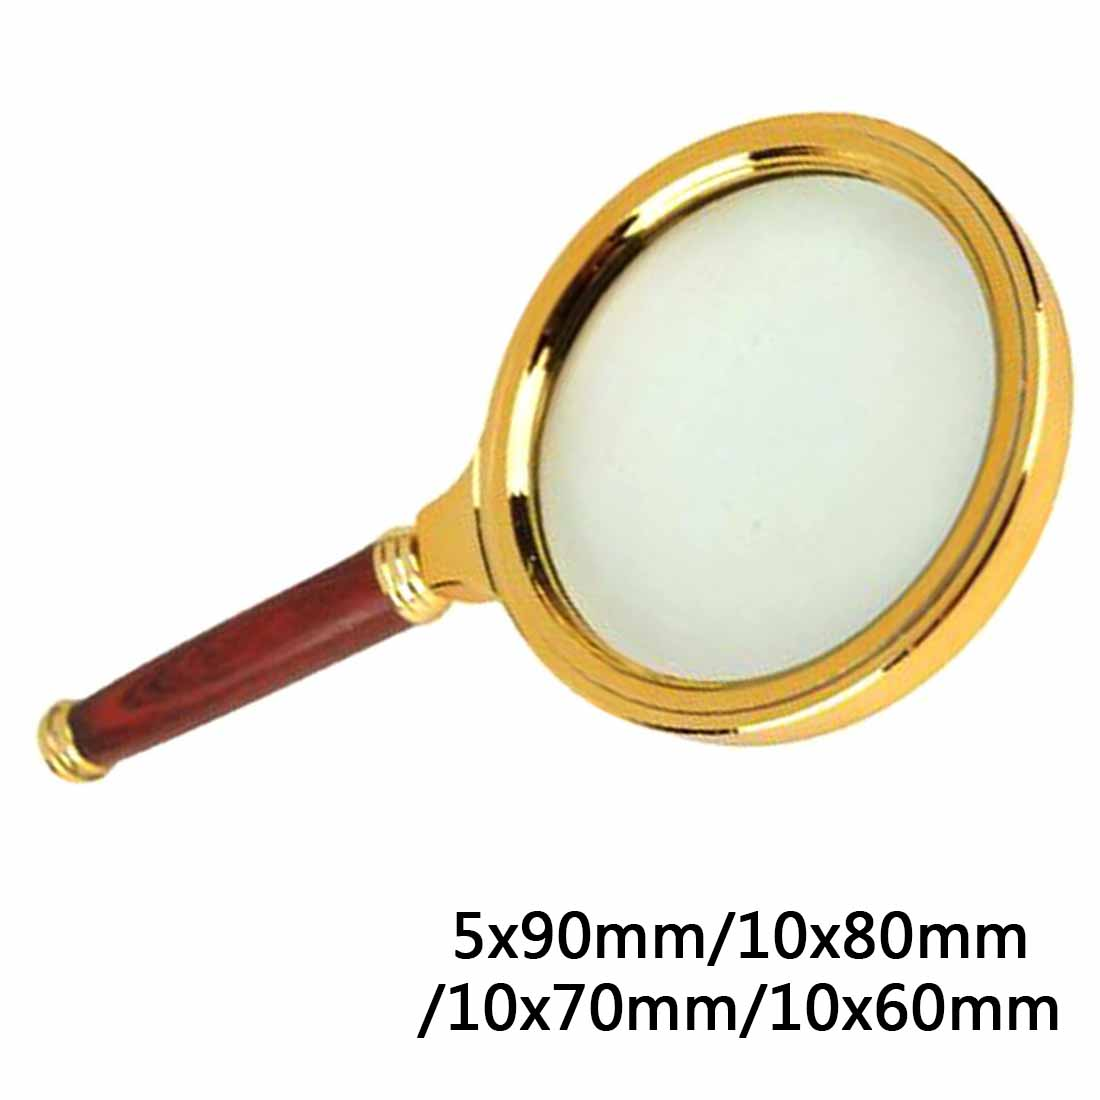 Magnifying Glass Loupe 90mm/80mm/70mm/60mm Handheld 5X/10X Magnifier Reading Jewelry Eye Loupe Magnifier Repair Tool